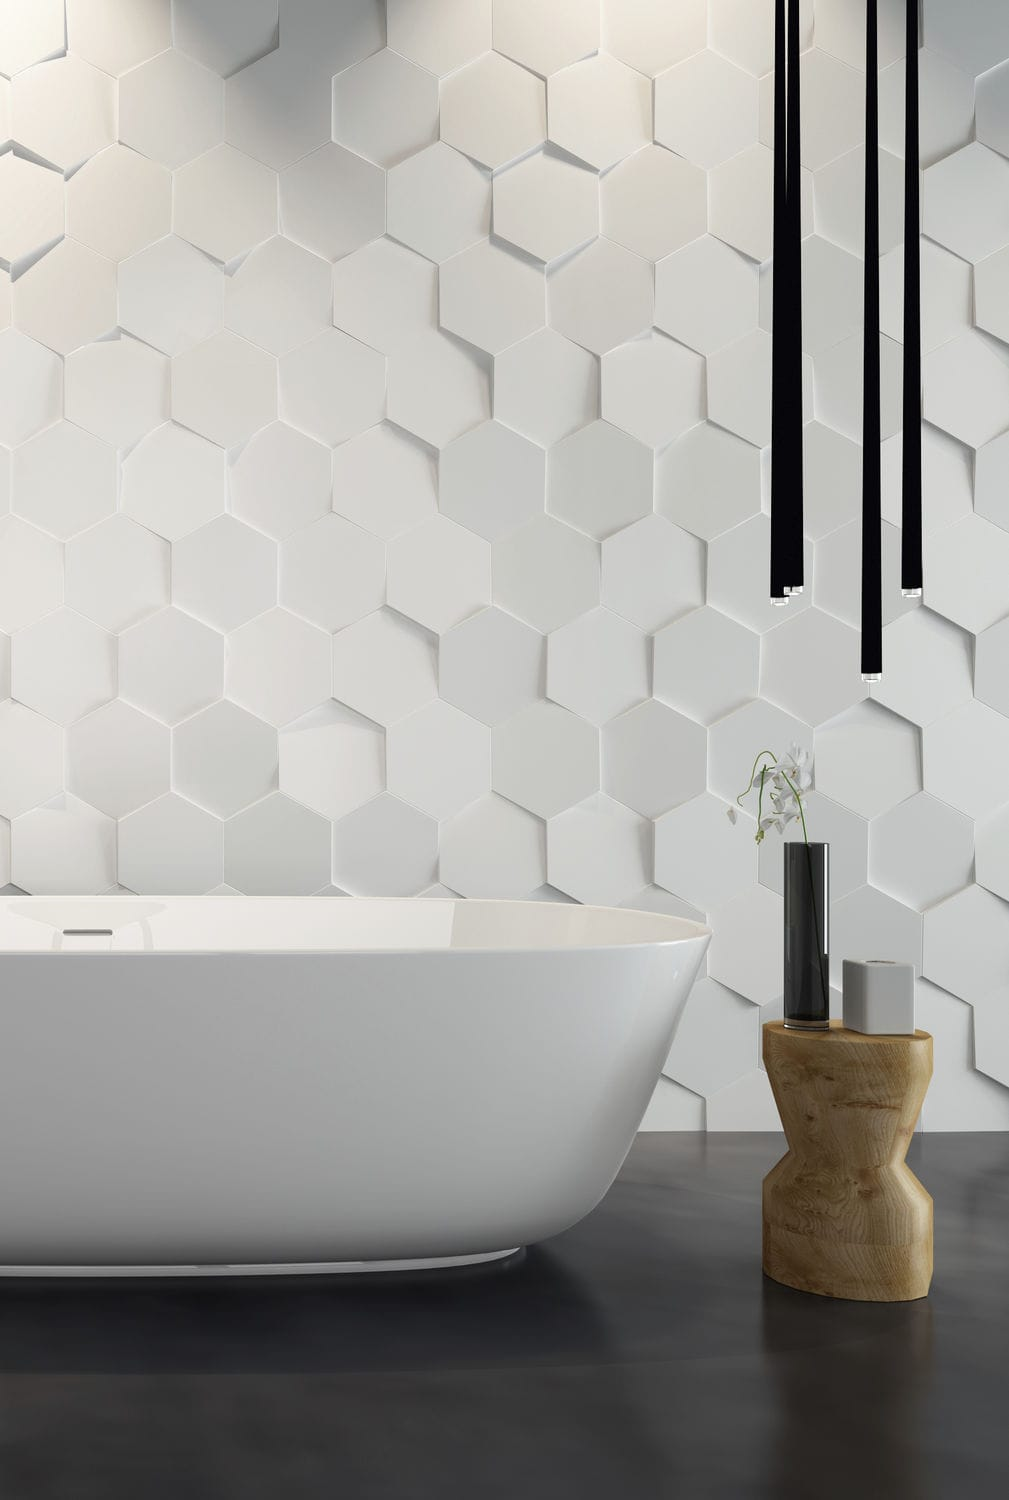 Delicieux Bathroom Tile / Wall / Ceramic / Textured   HEXA